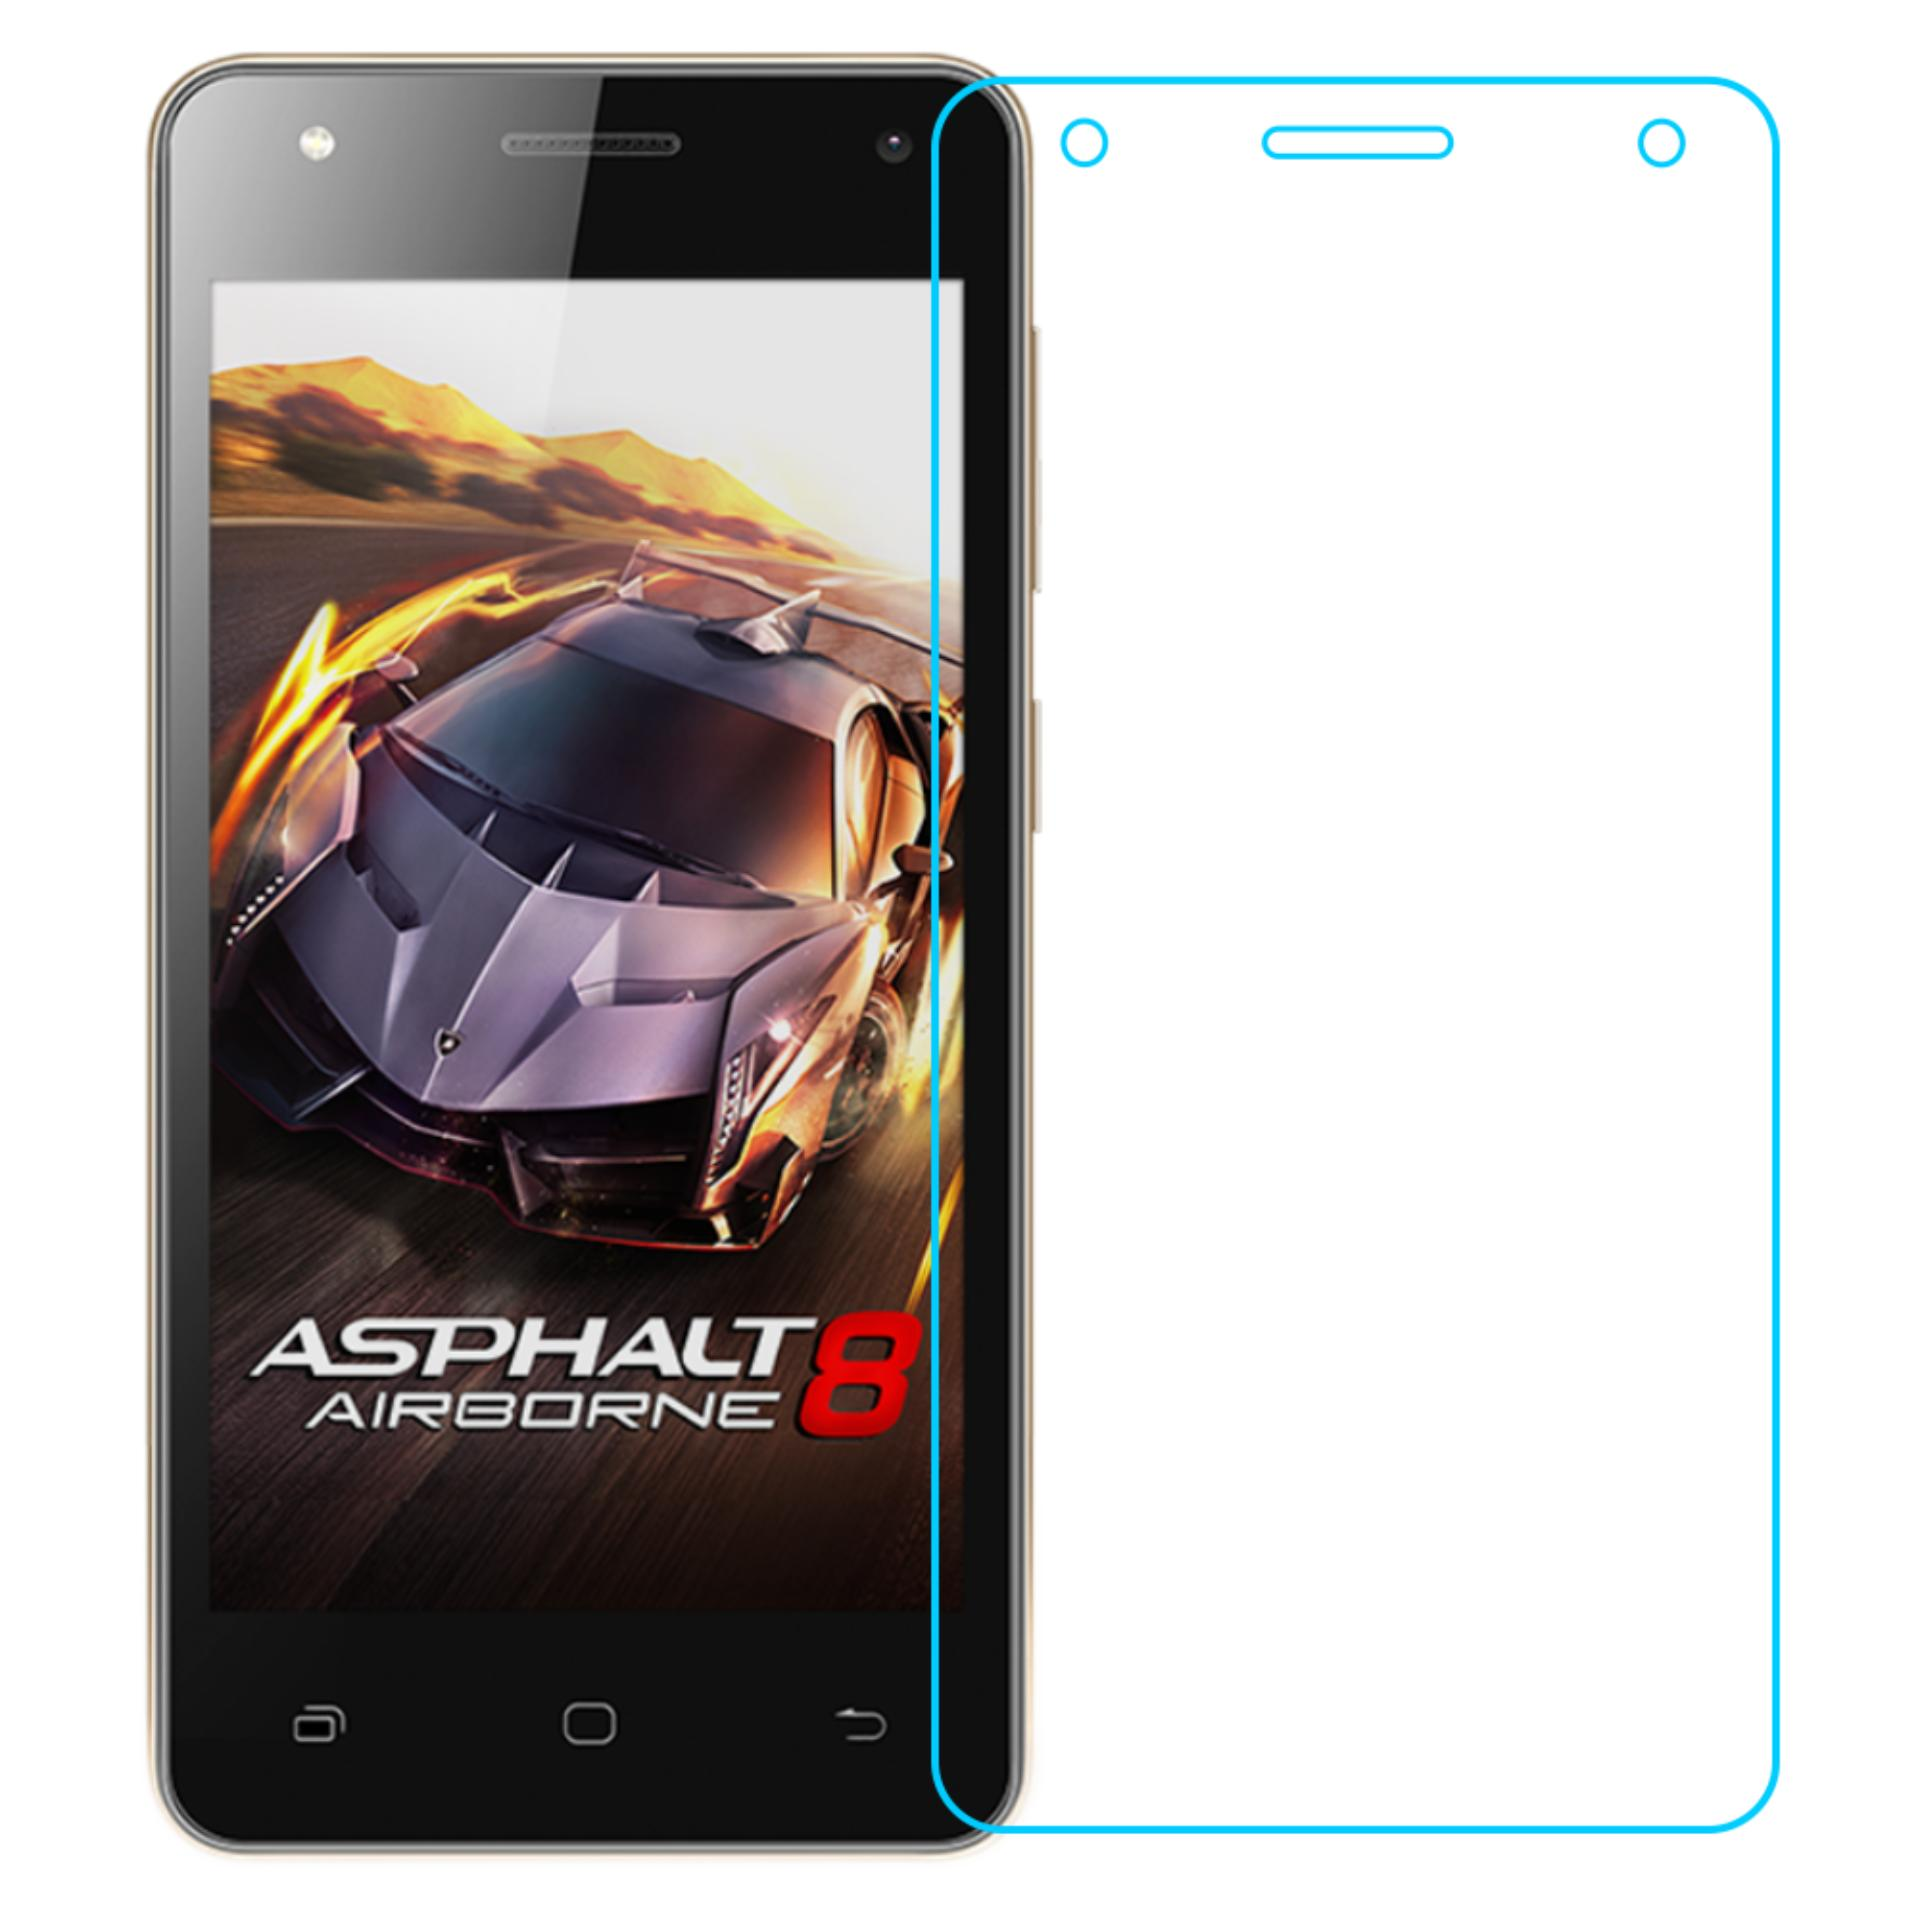 Vn Smartfren Andromax E2 Tempered Glass 9H Screen Protector 0.32mm - Transparan